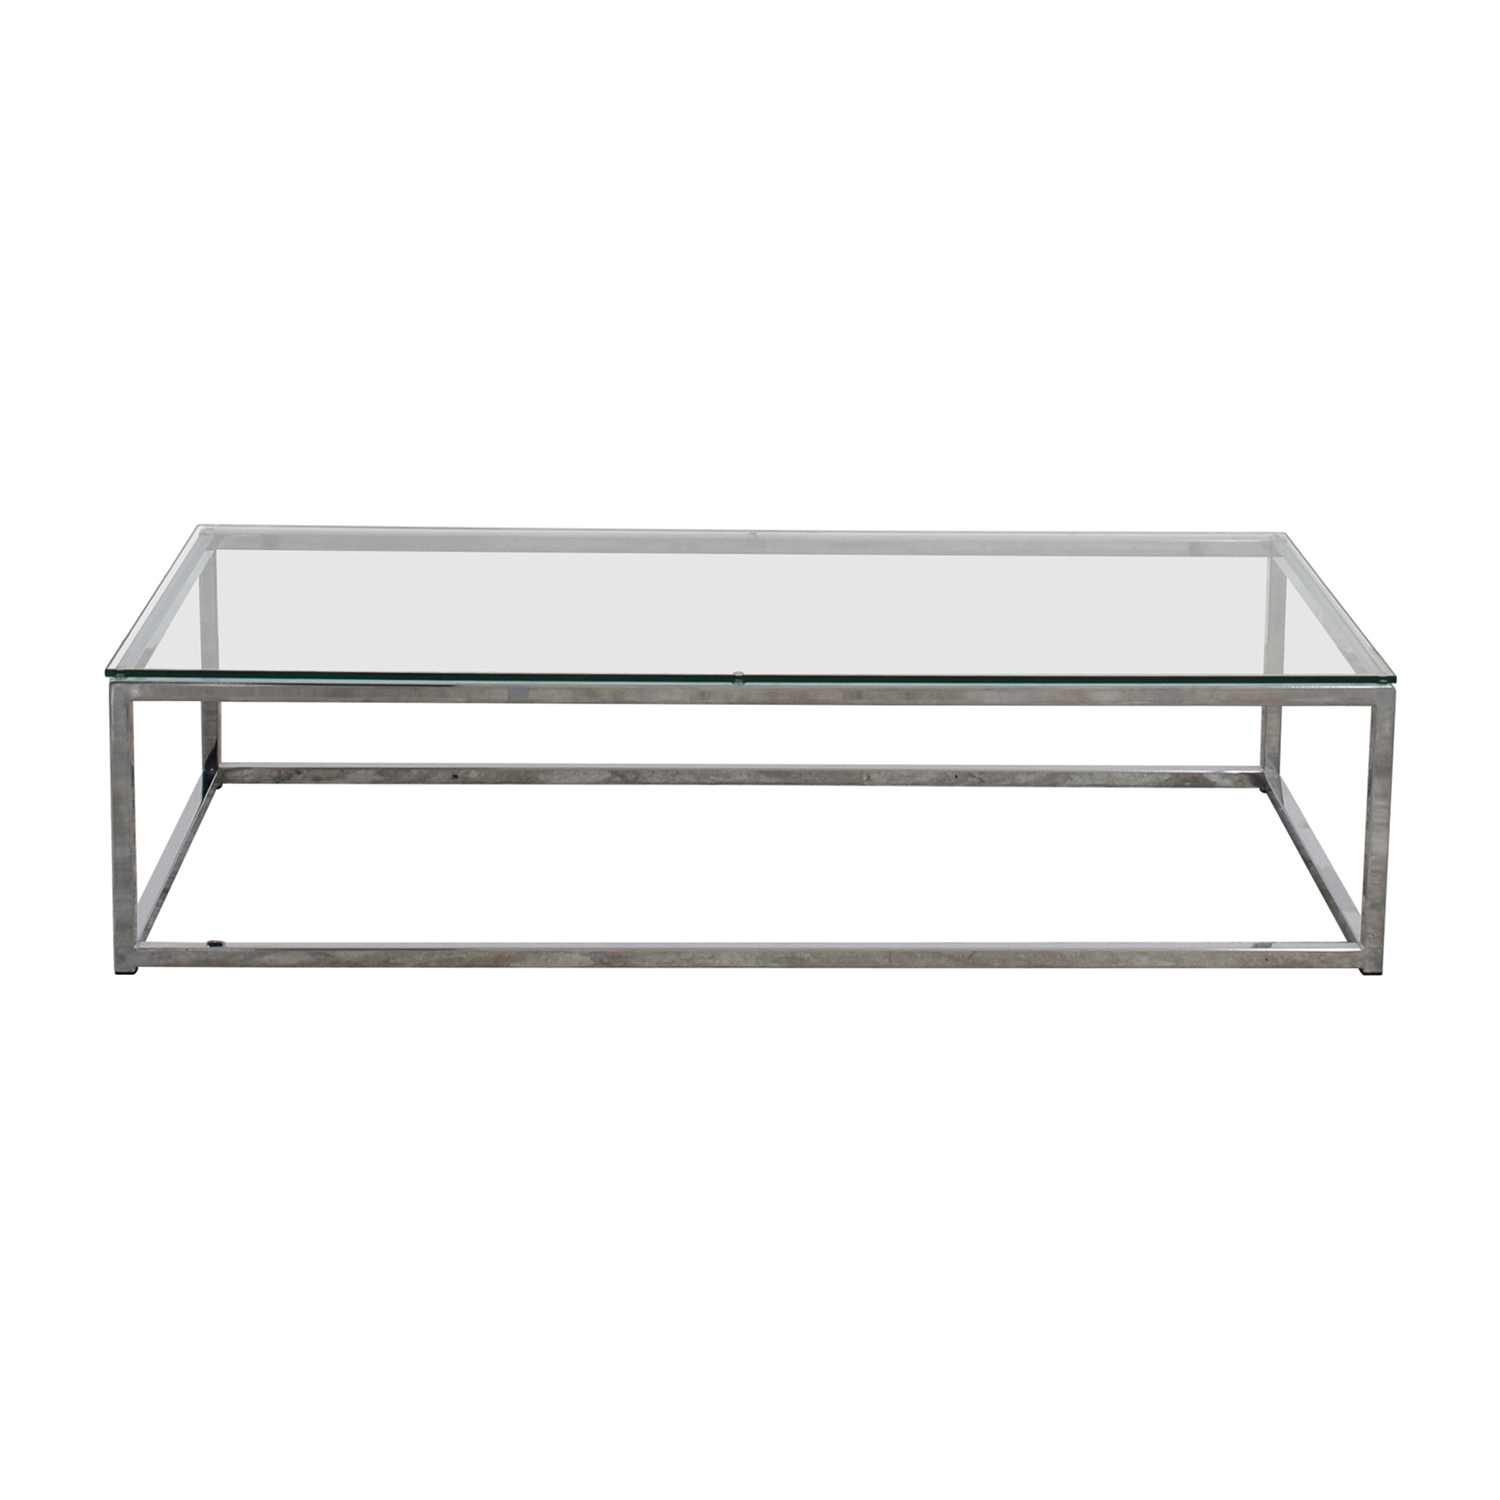 CB2 CB2 Glass and Chrome Coffee Table Chrome / Glass